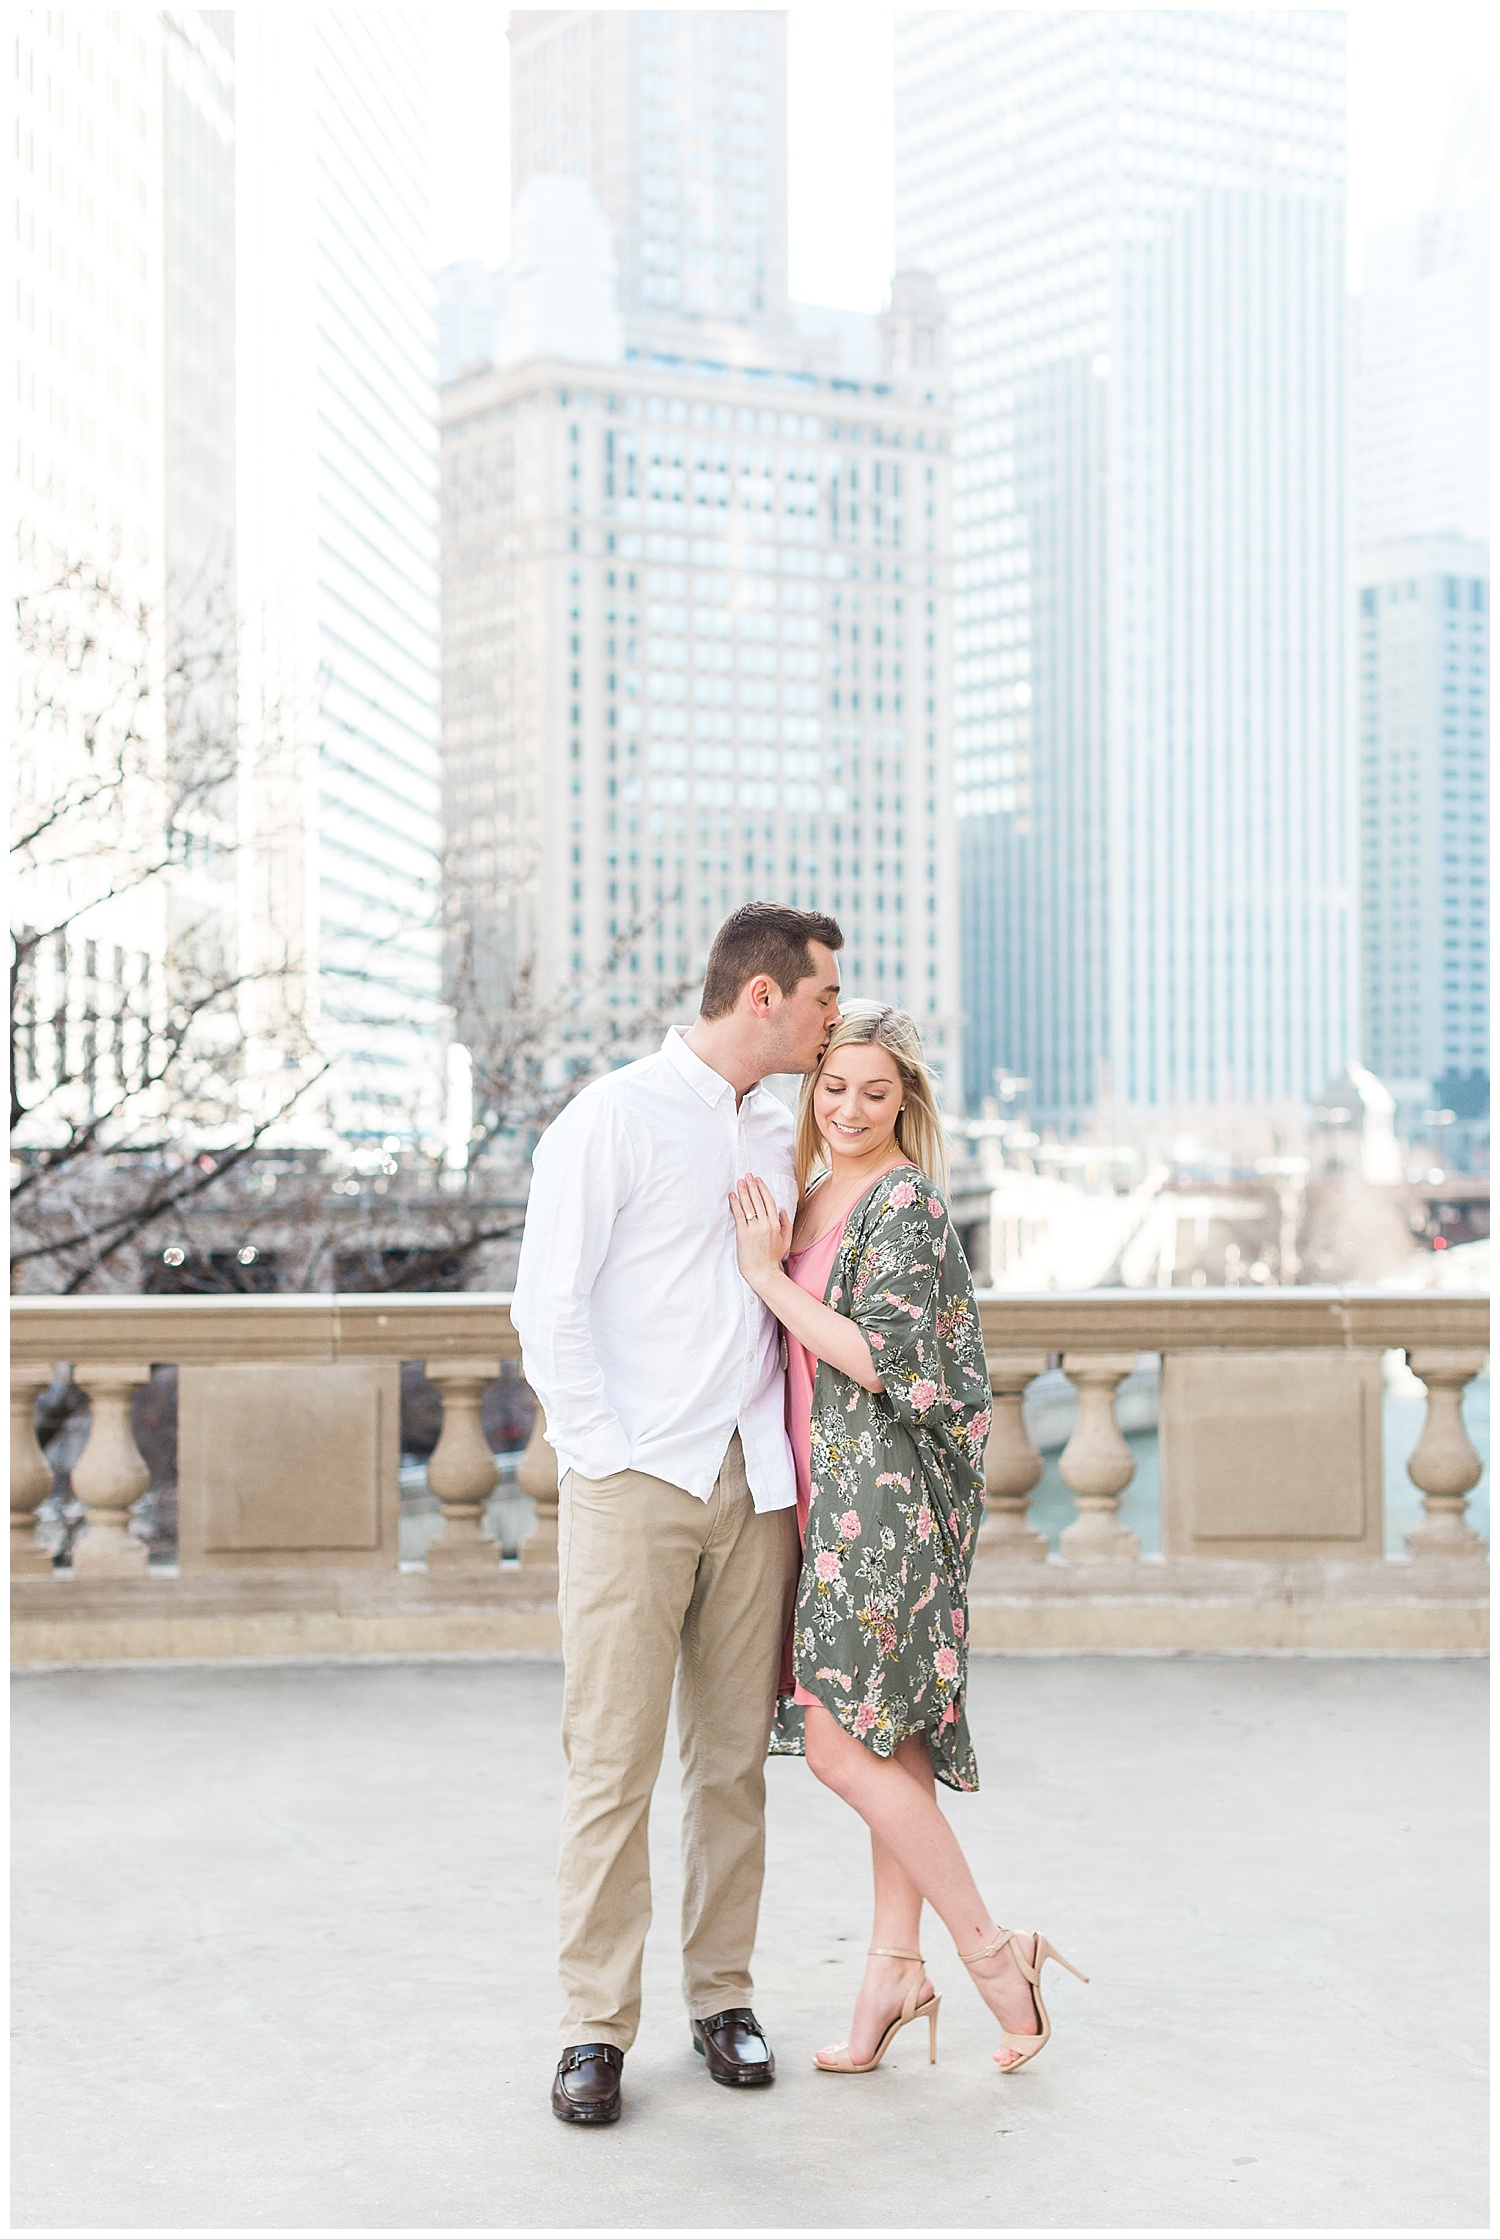 wrigley-building-chicago-engagement-pink-dress-romantic-michigan-ave_0010.jpg